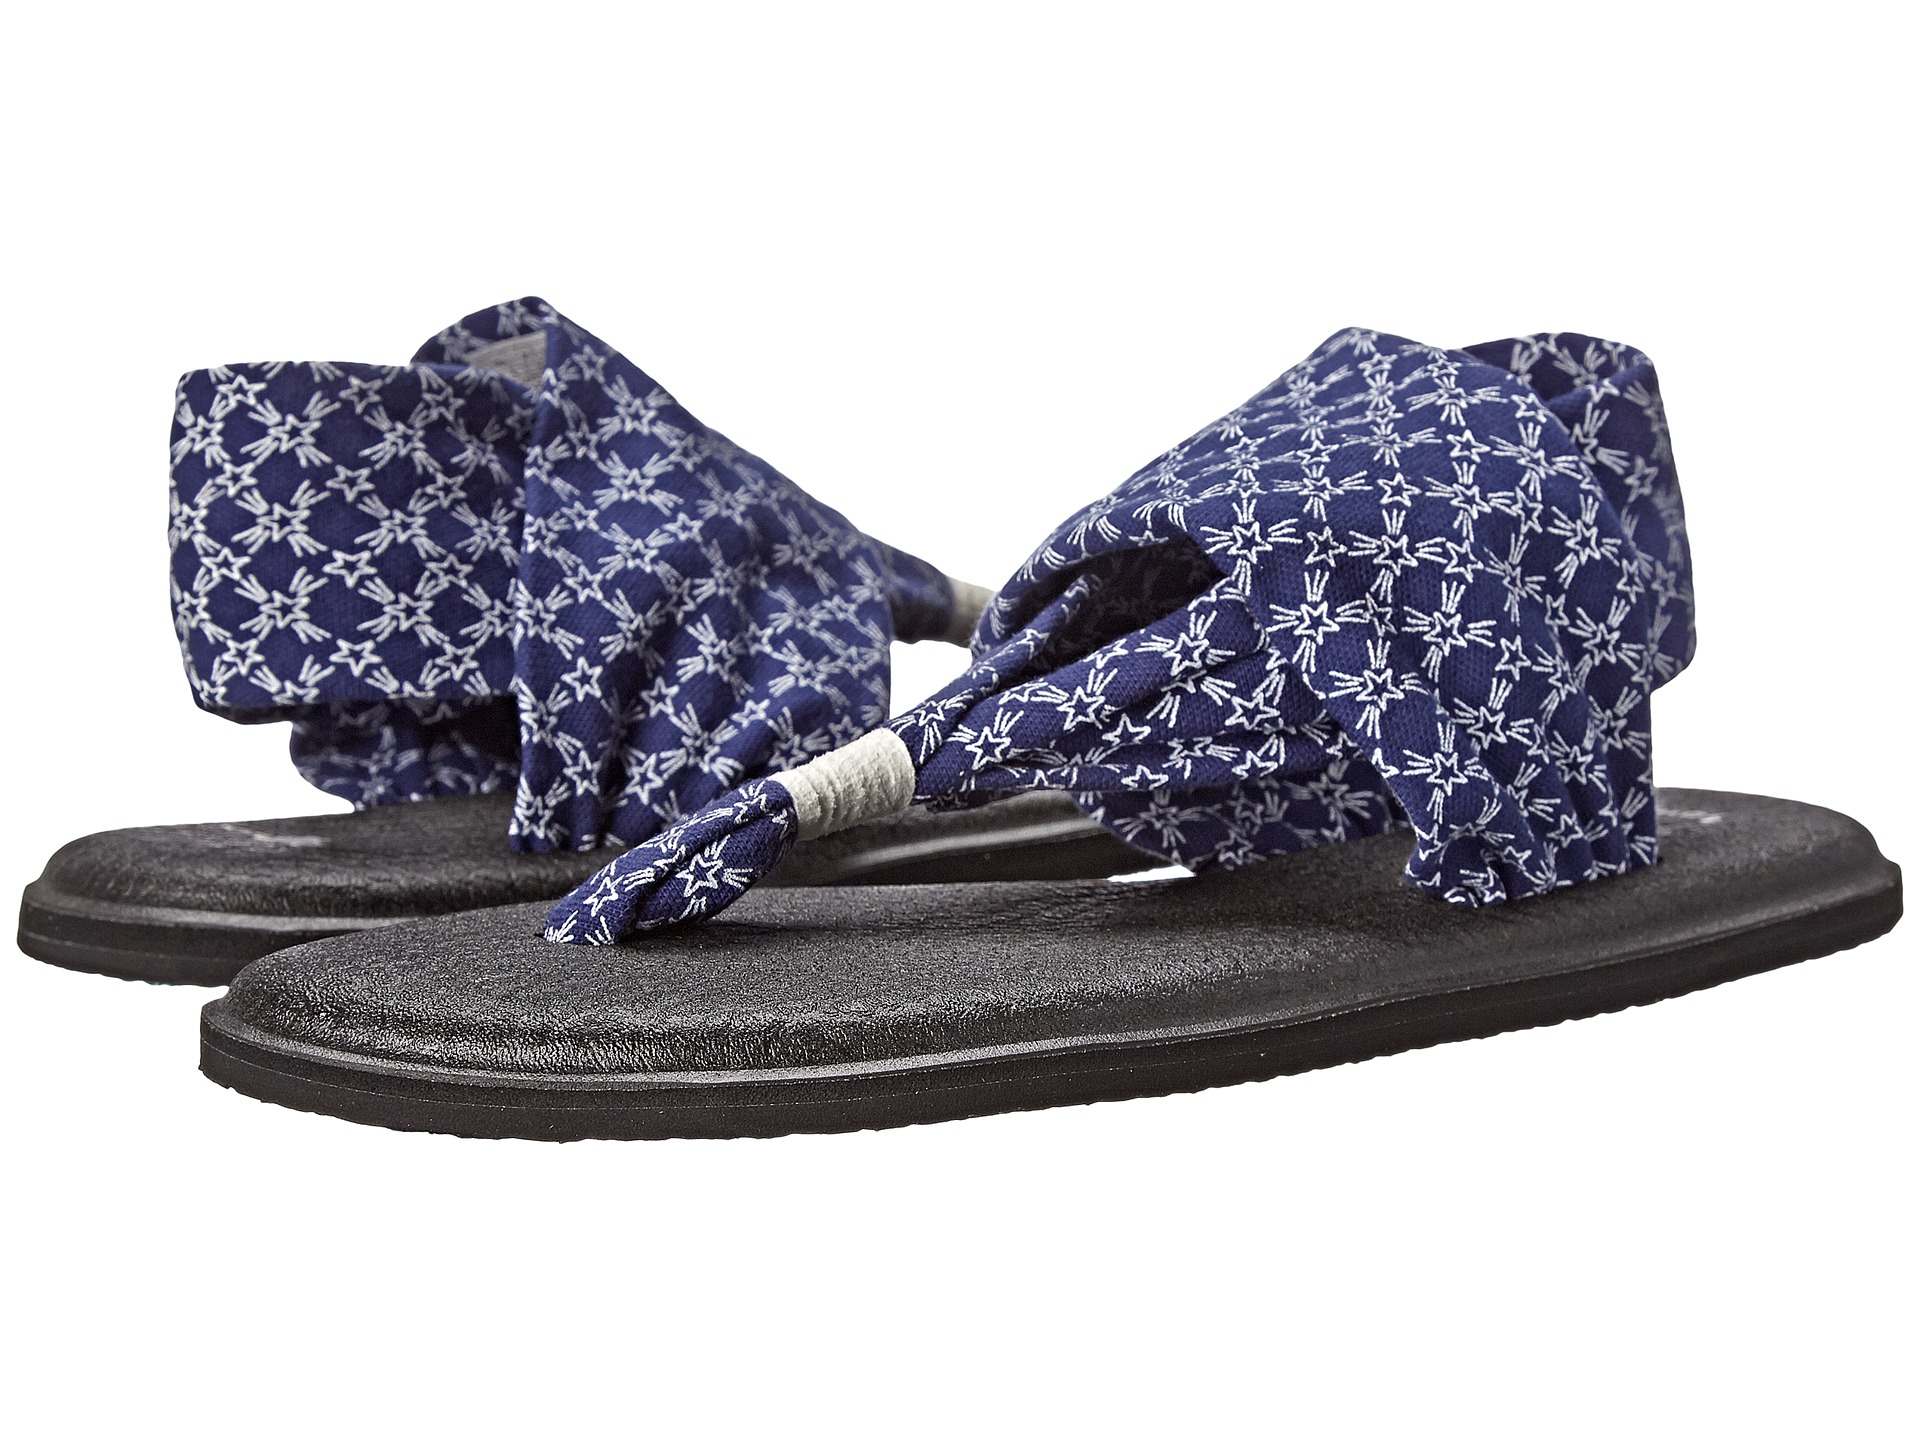 cc885fedbda1 Lyst - Sanuk Yoga Sling Patriot in Blue